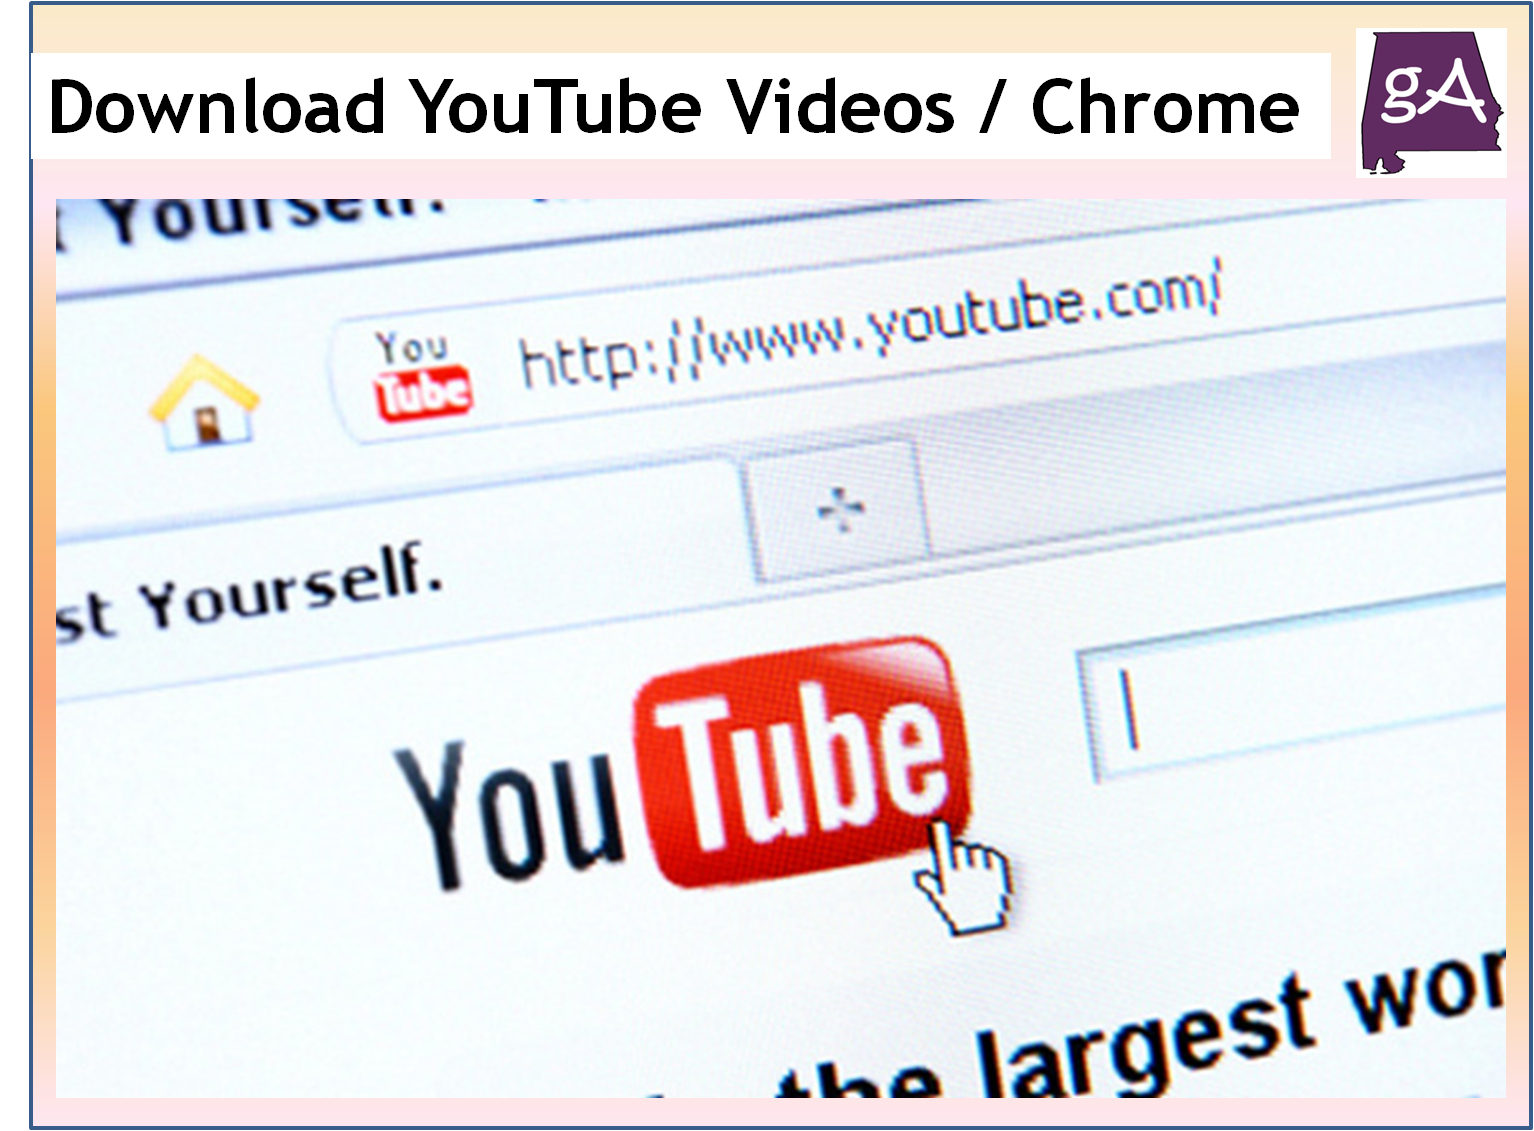 This is how you download youtube videos on google chrome geek alabama picture1serfvbgesw ccuart Images